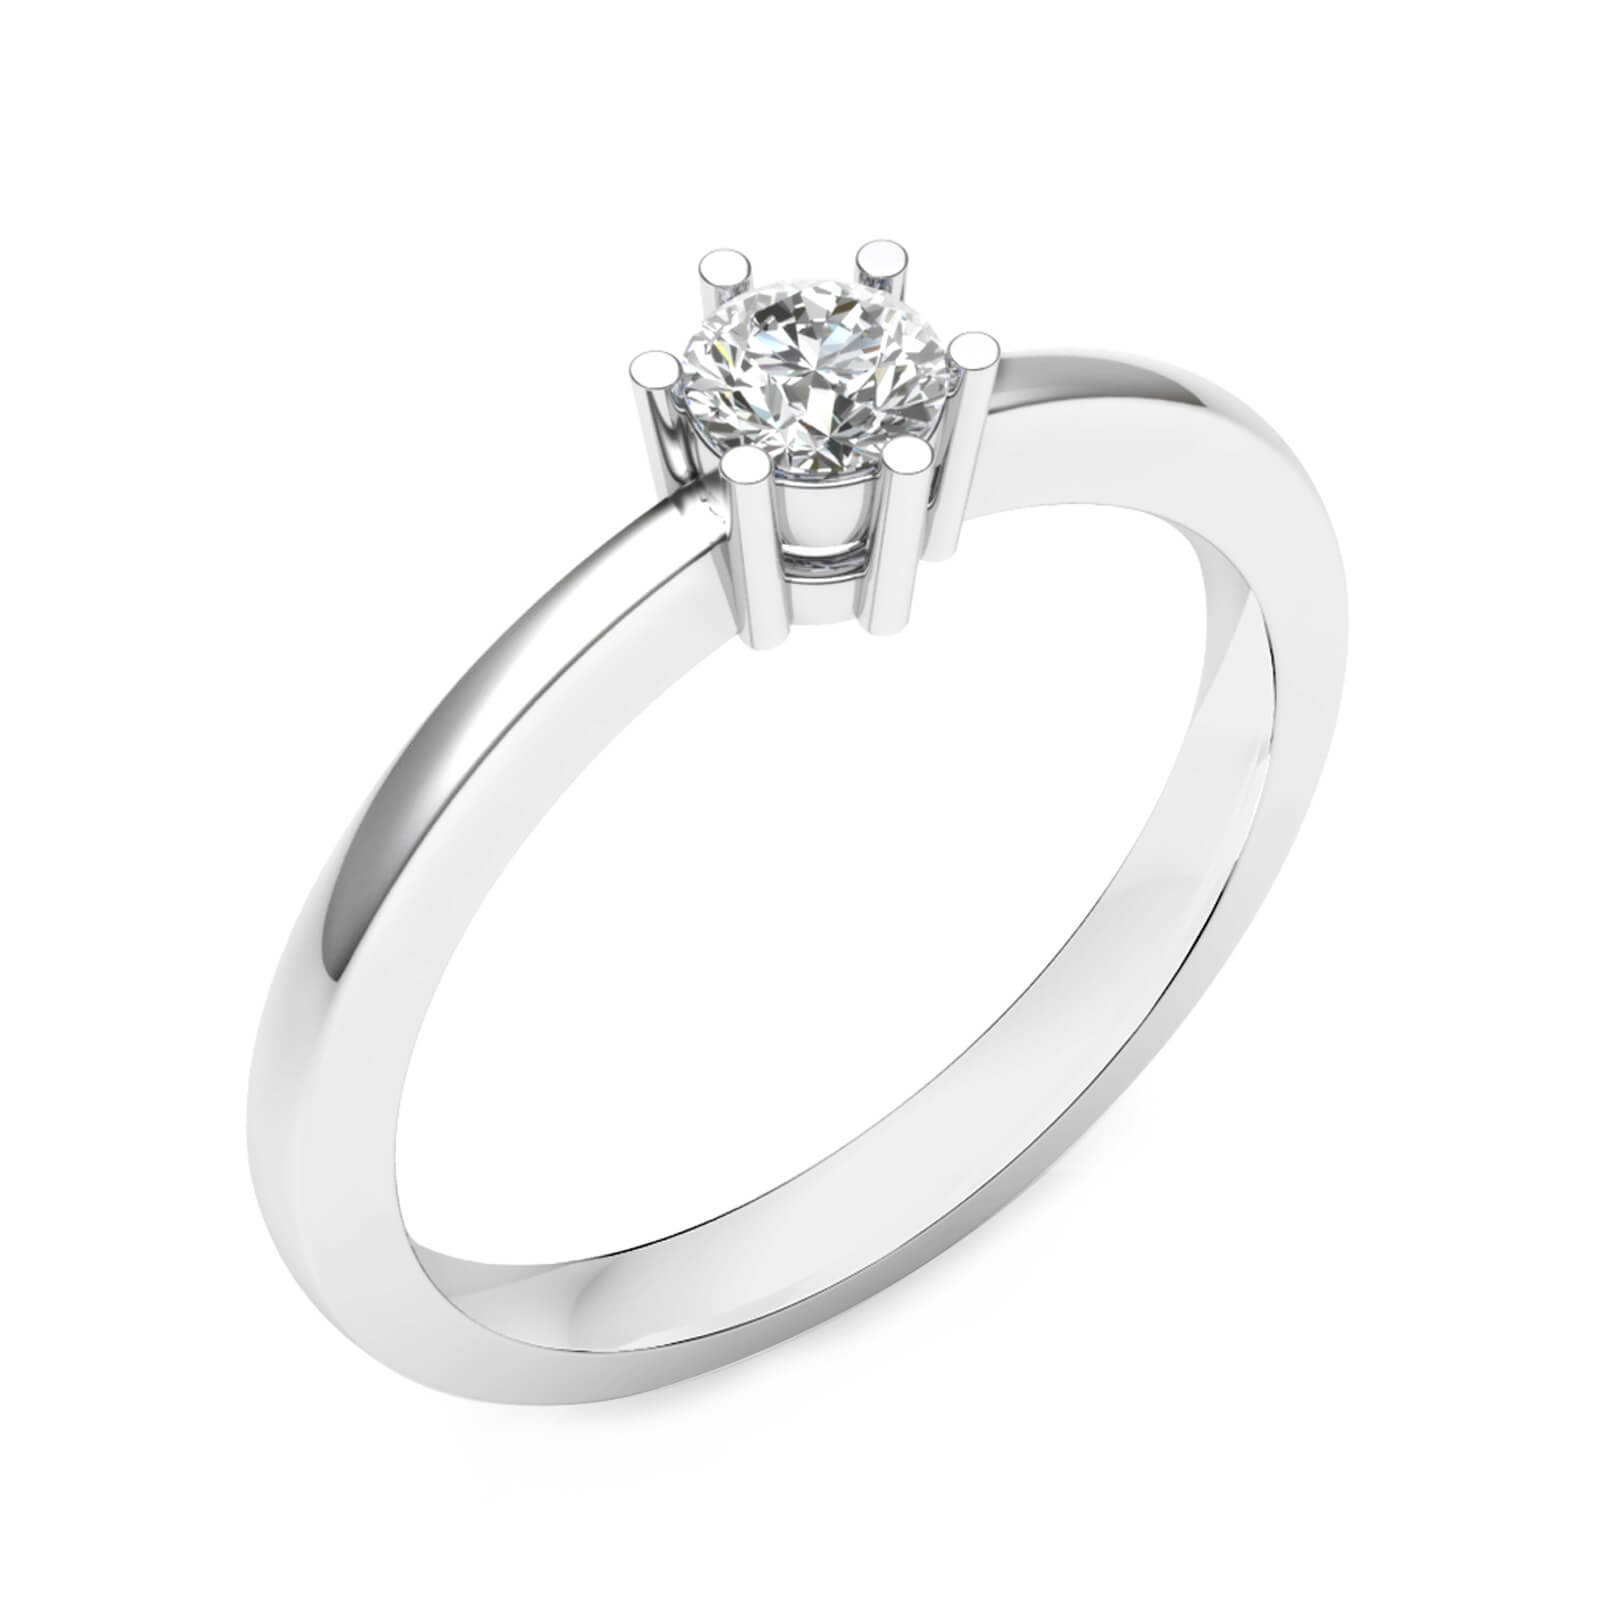 Engagement Rings white gold with a central diamond